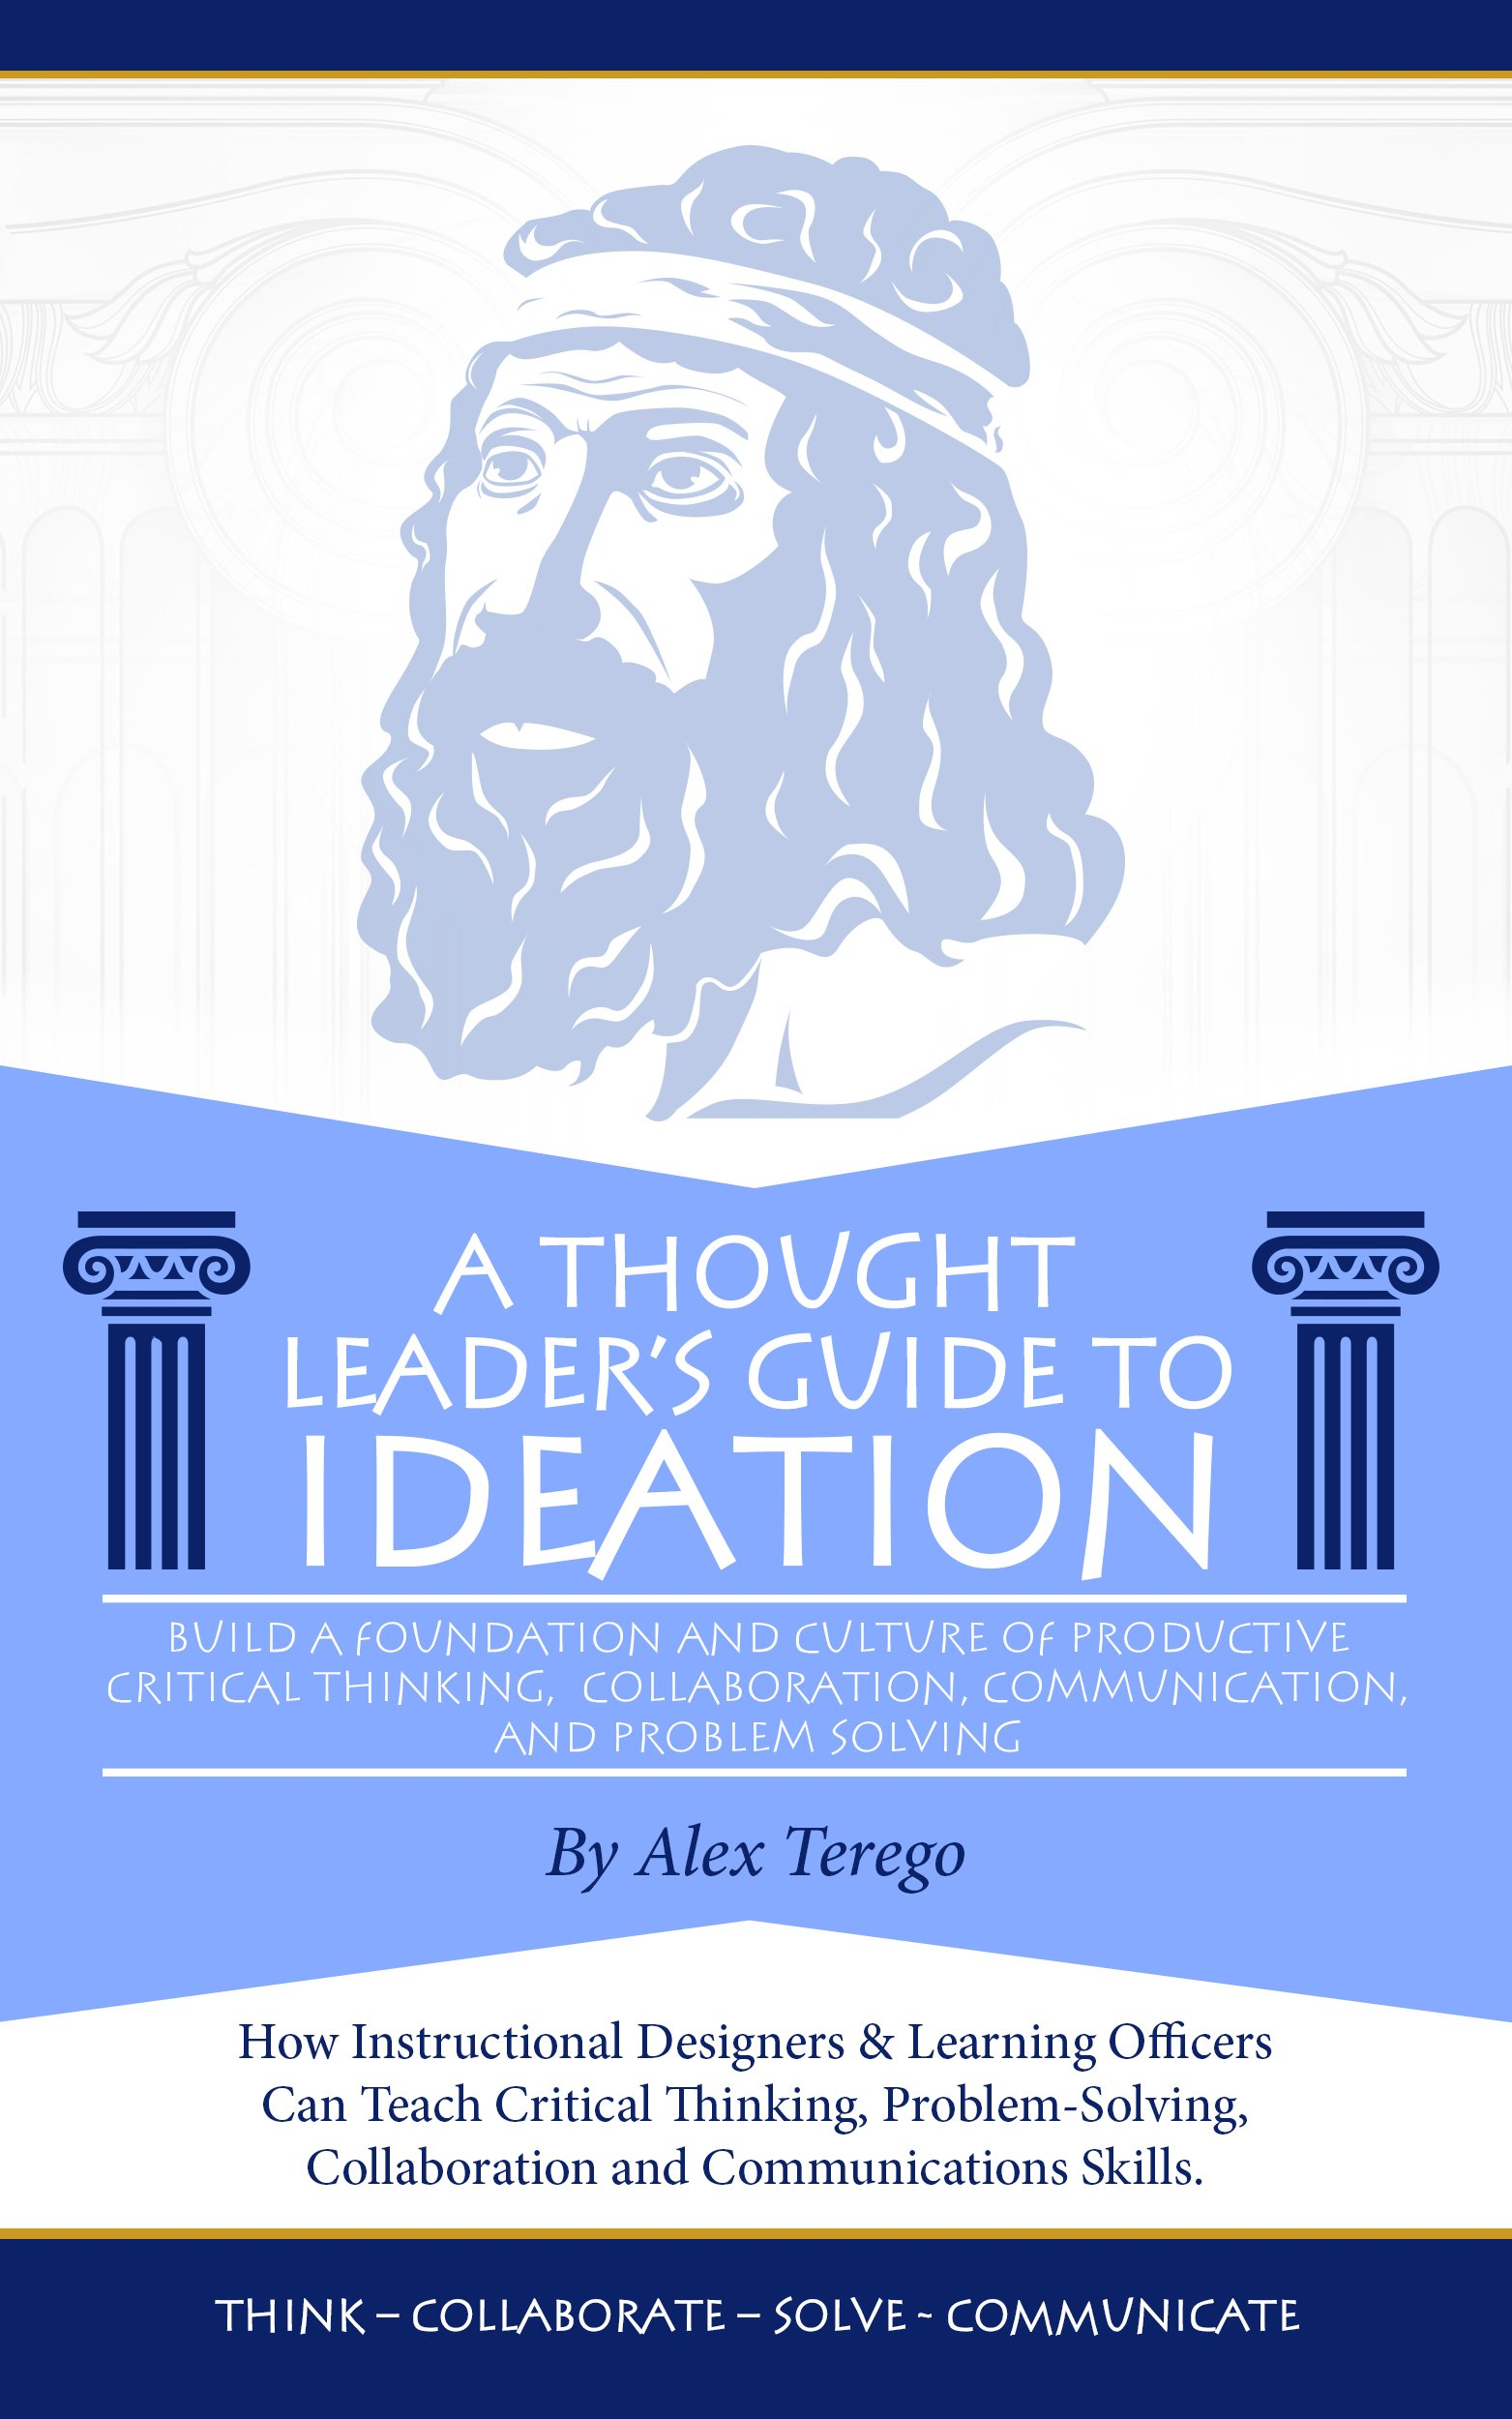 Instructional Designers and Learning Officers: A Thought Leader's Guide to Ideation: How to Teach Critical Thinking, Problem-Solving, Collaboration, and Communication Skills